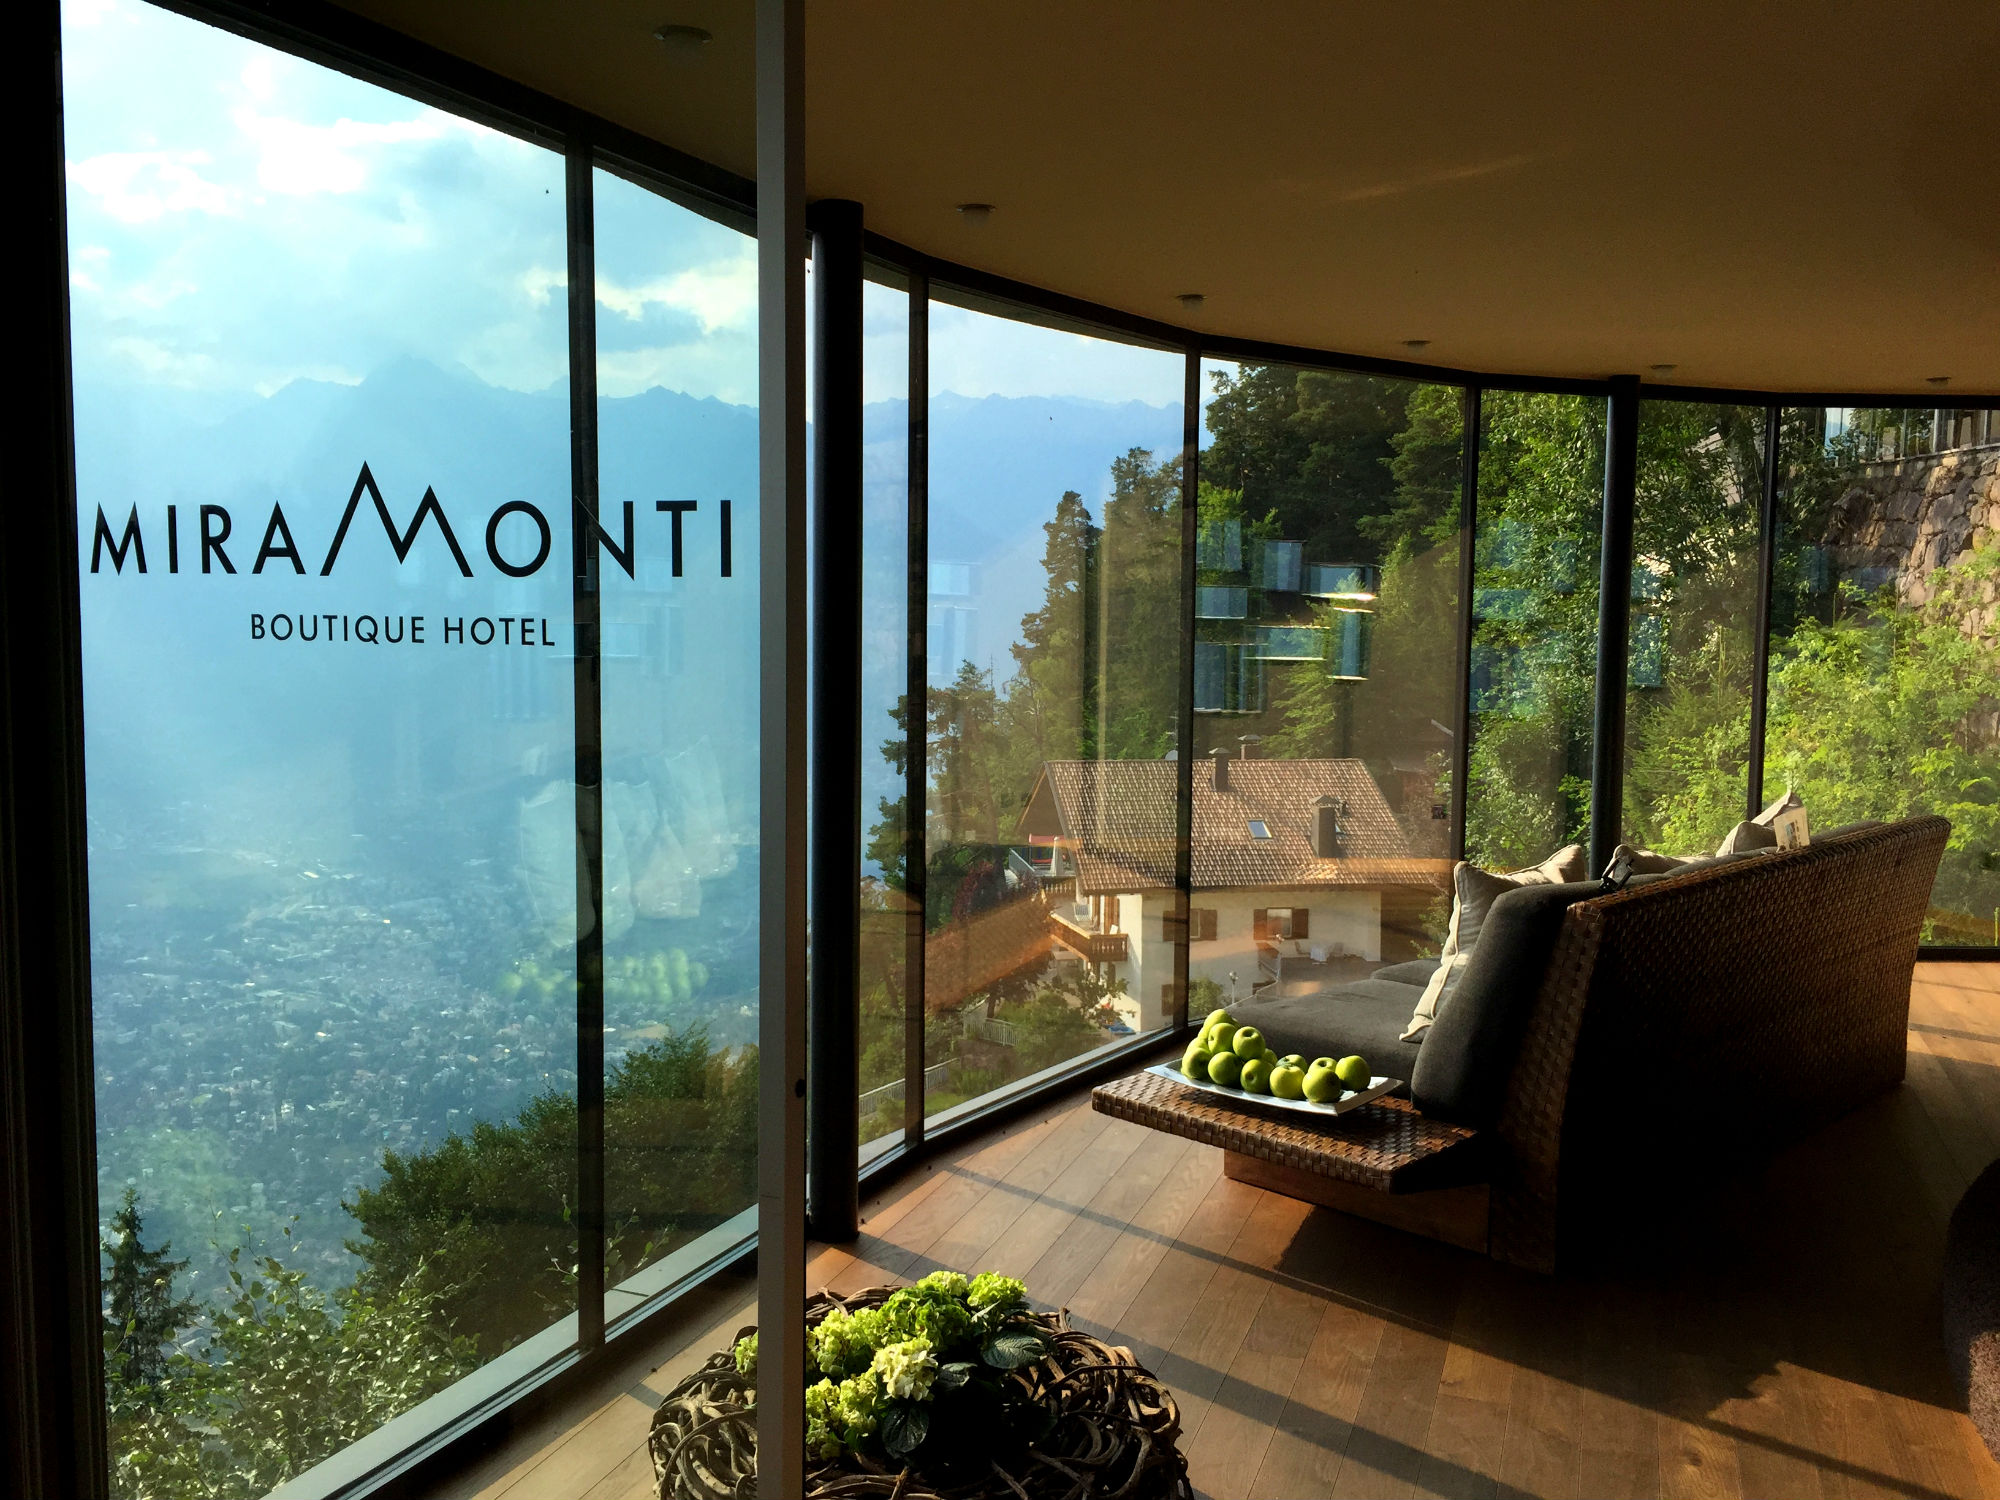 Miramonti boutique hotel in s dtirol hotelreview for Design boutique hotel tirol